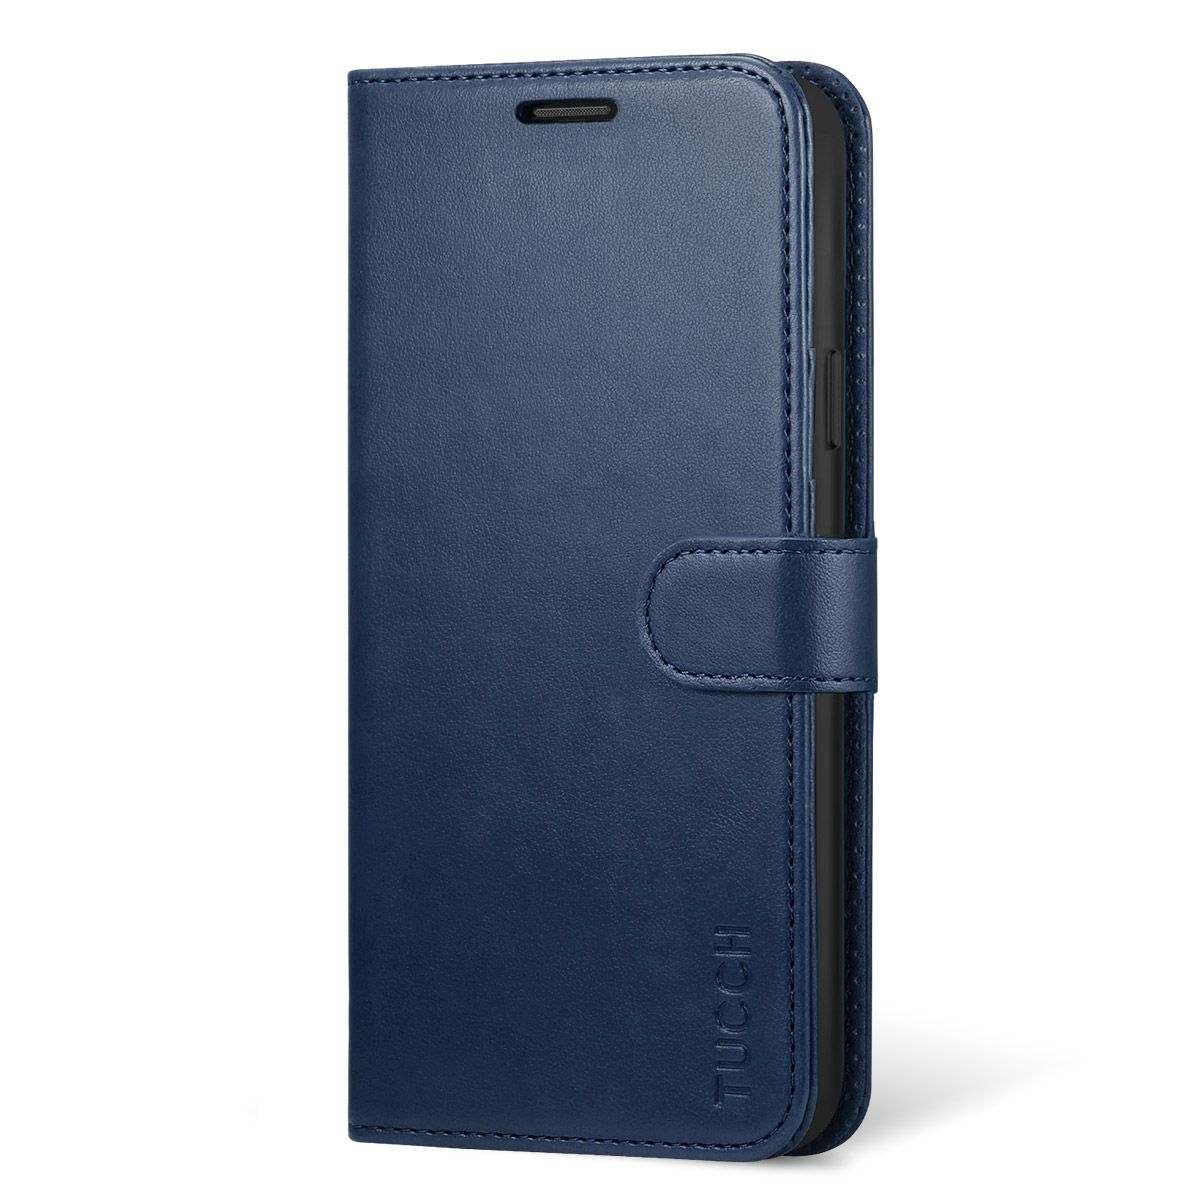 timeless design d50c9 8905e TUCCH Samsung Galaxy S9 Plus Case, Premium PU Folio Leather Case, TPU  Shockproof Interior Case